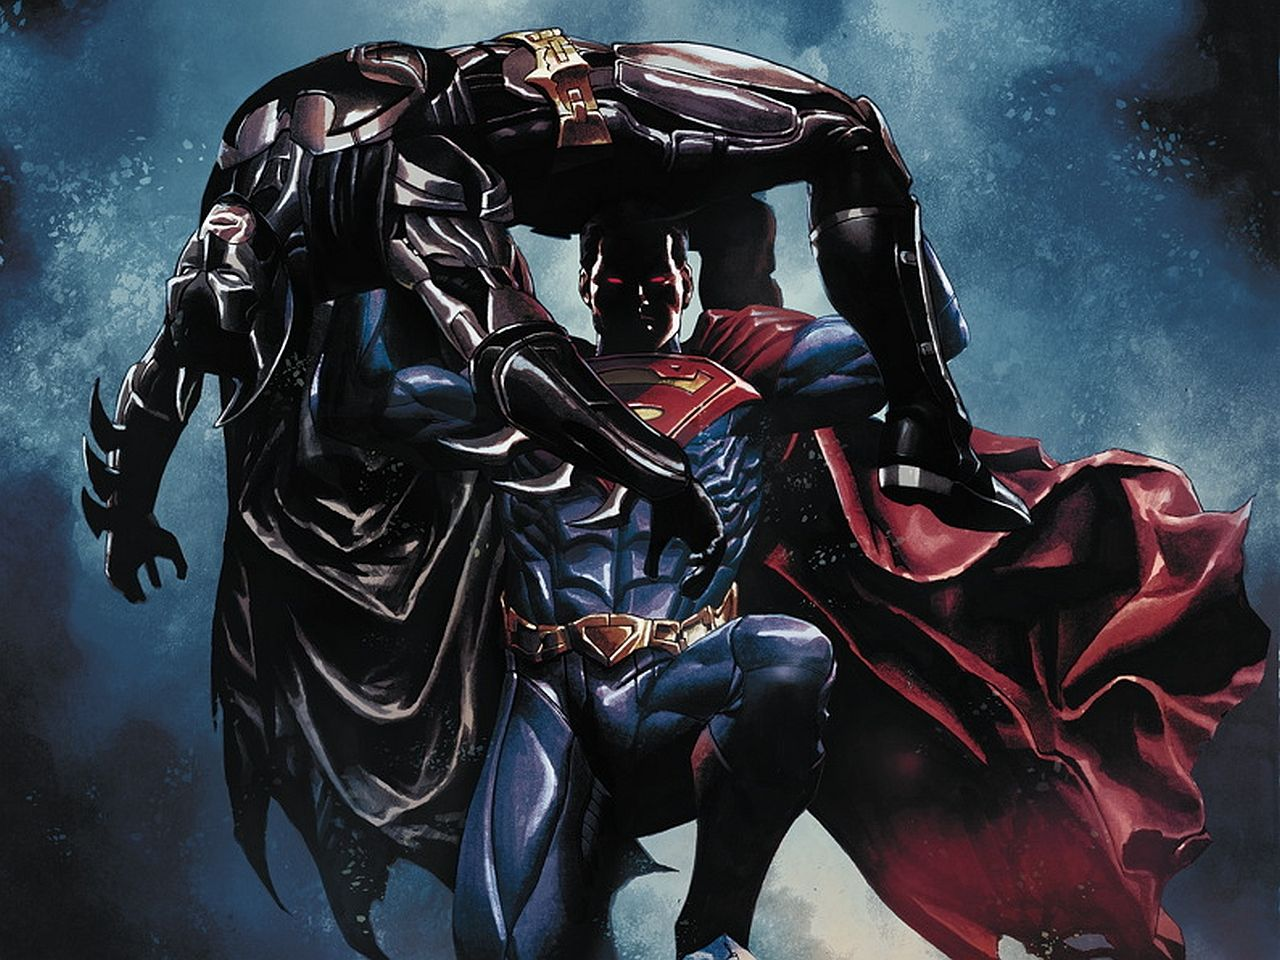 Injustice Gods Among Us Computer Wallpapers Desktop Backgrounds 1280x960 Id 437934 Injustice Batman Batman Vs Superman